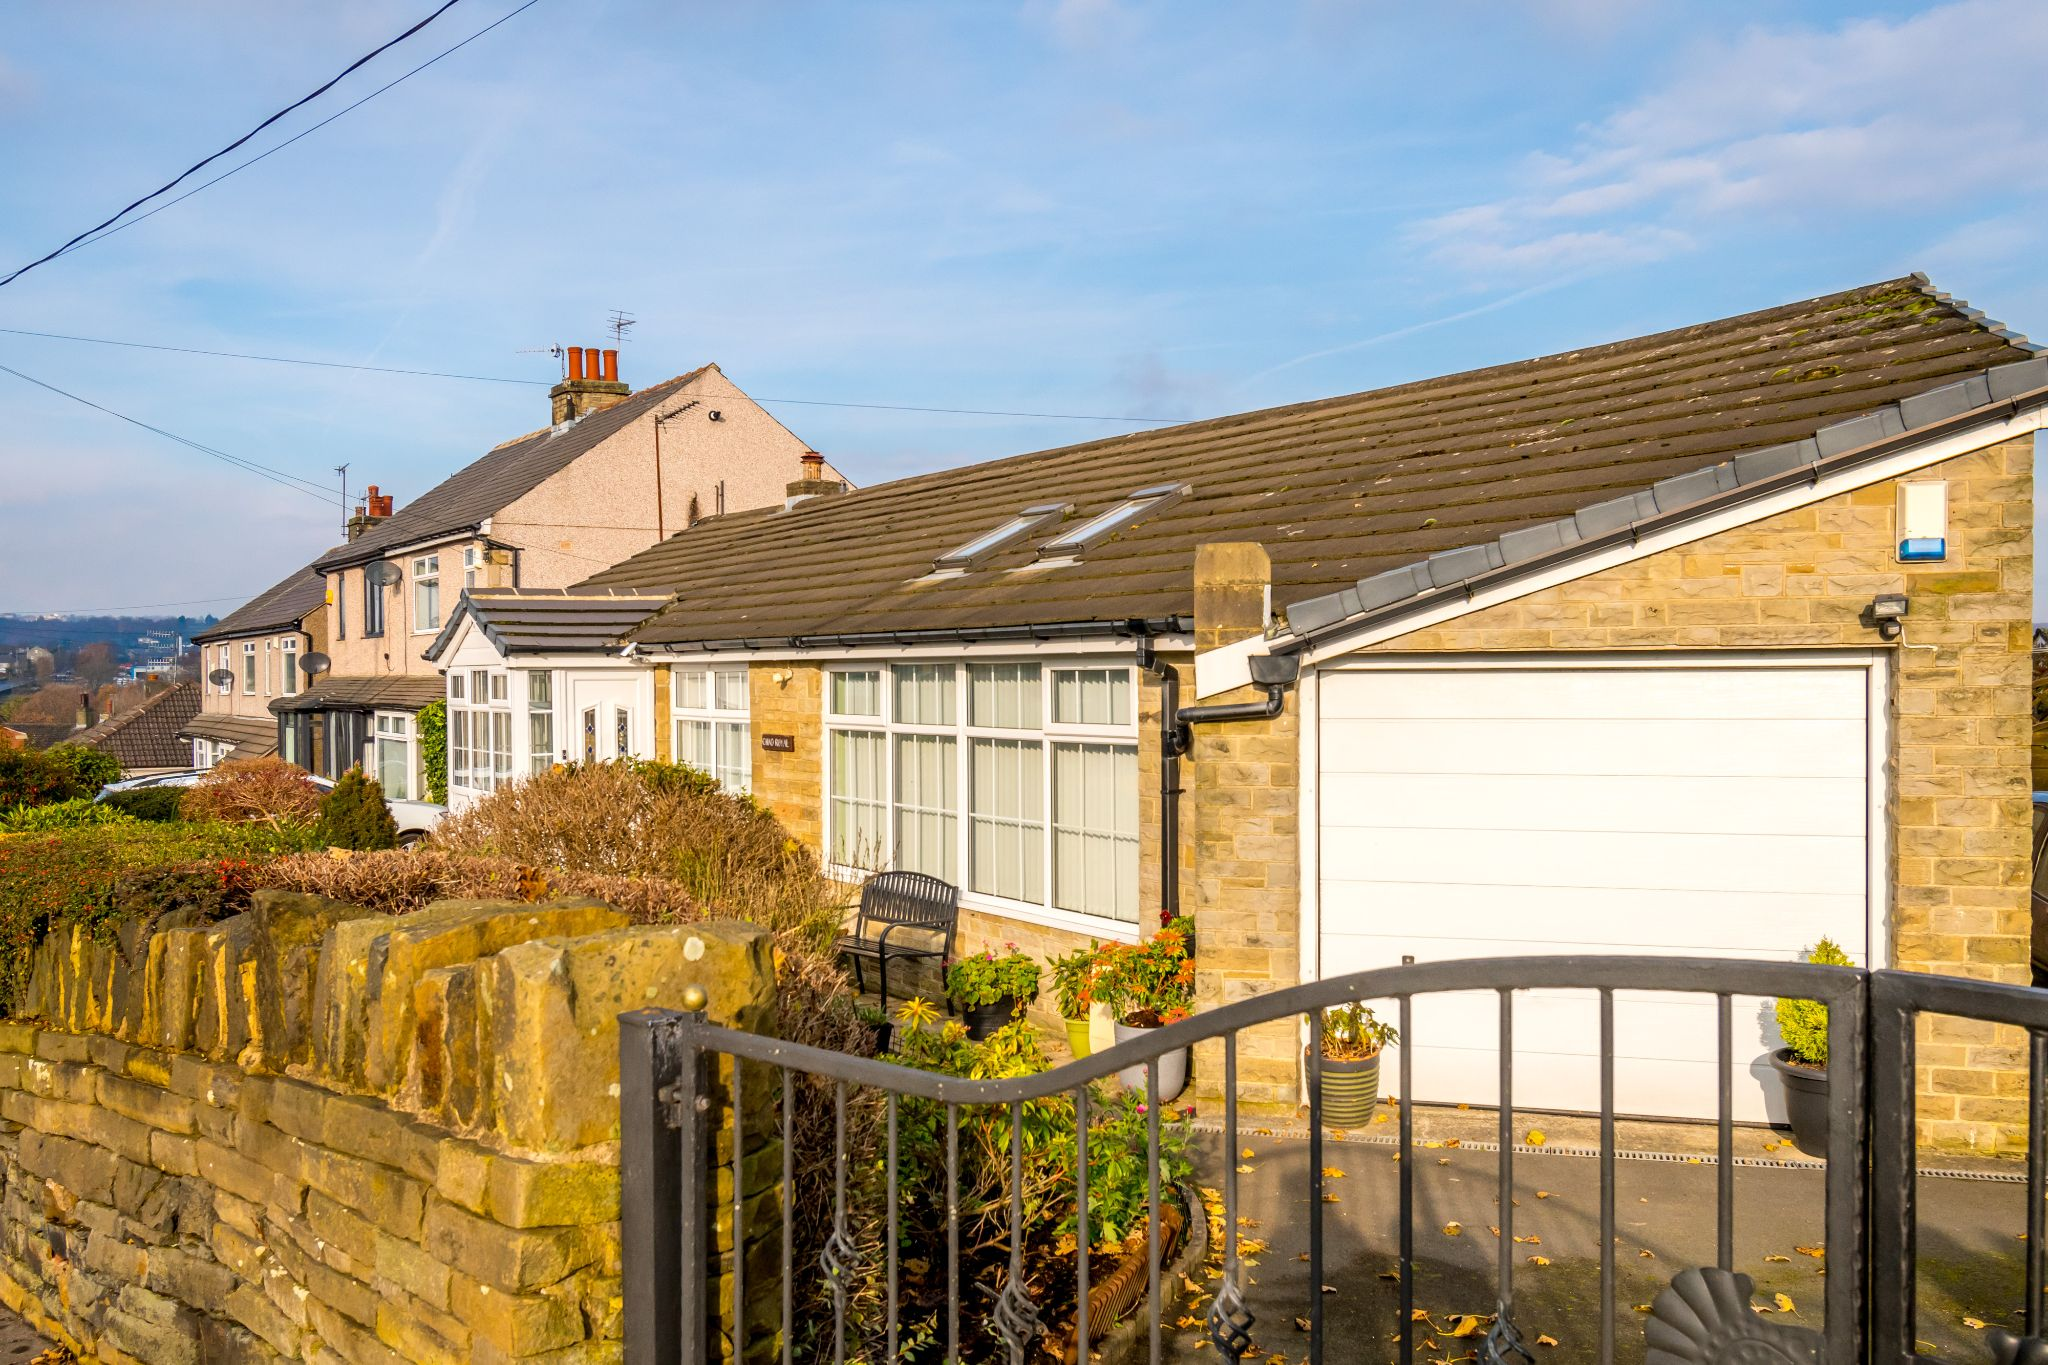 3 bedroom detached bungalow For Sale in Hove Edge - Front drive right hand side